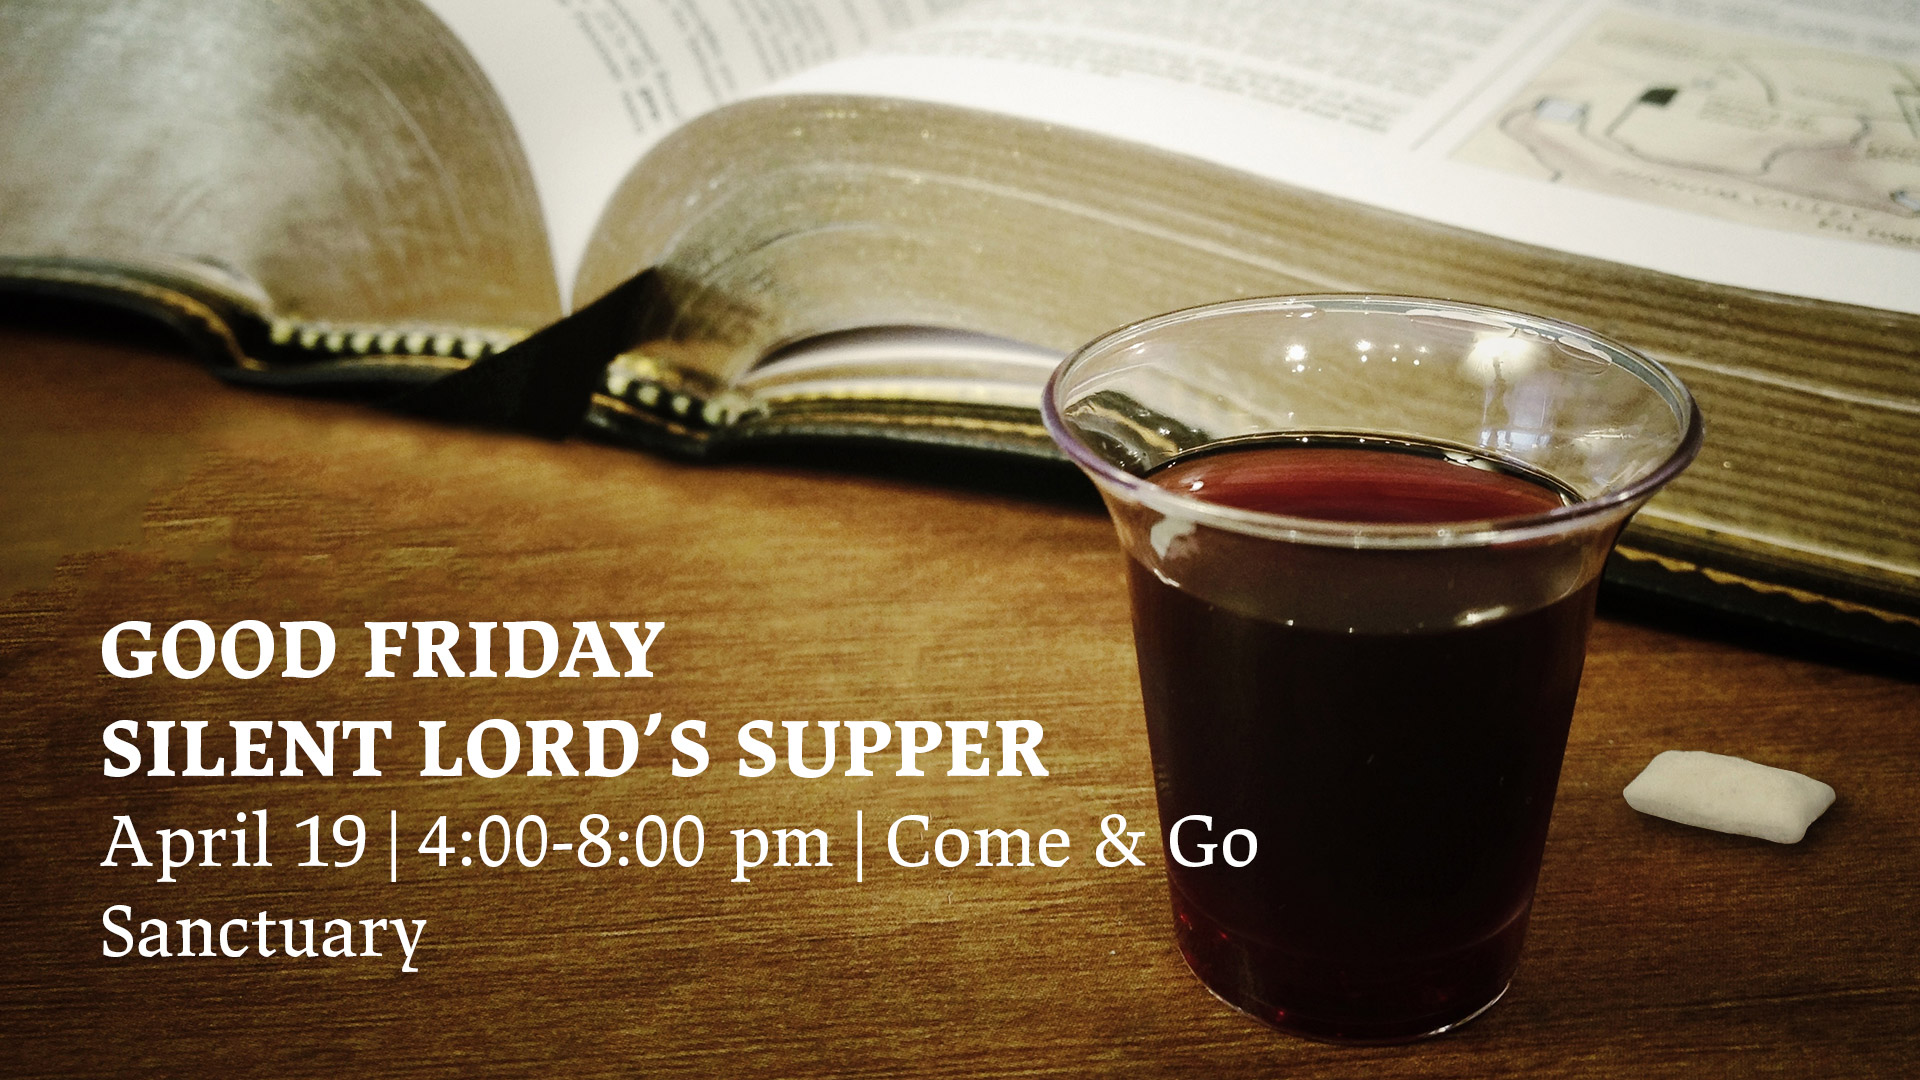 Good Friday Silent Lord's Supper